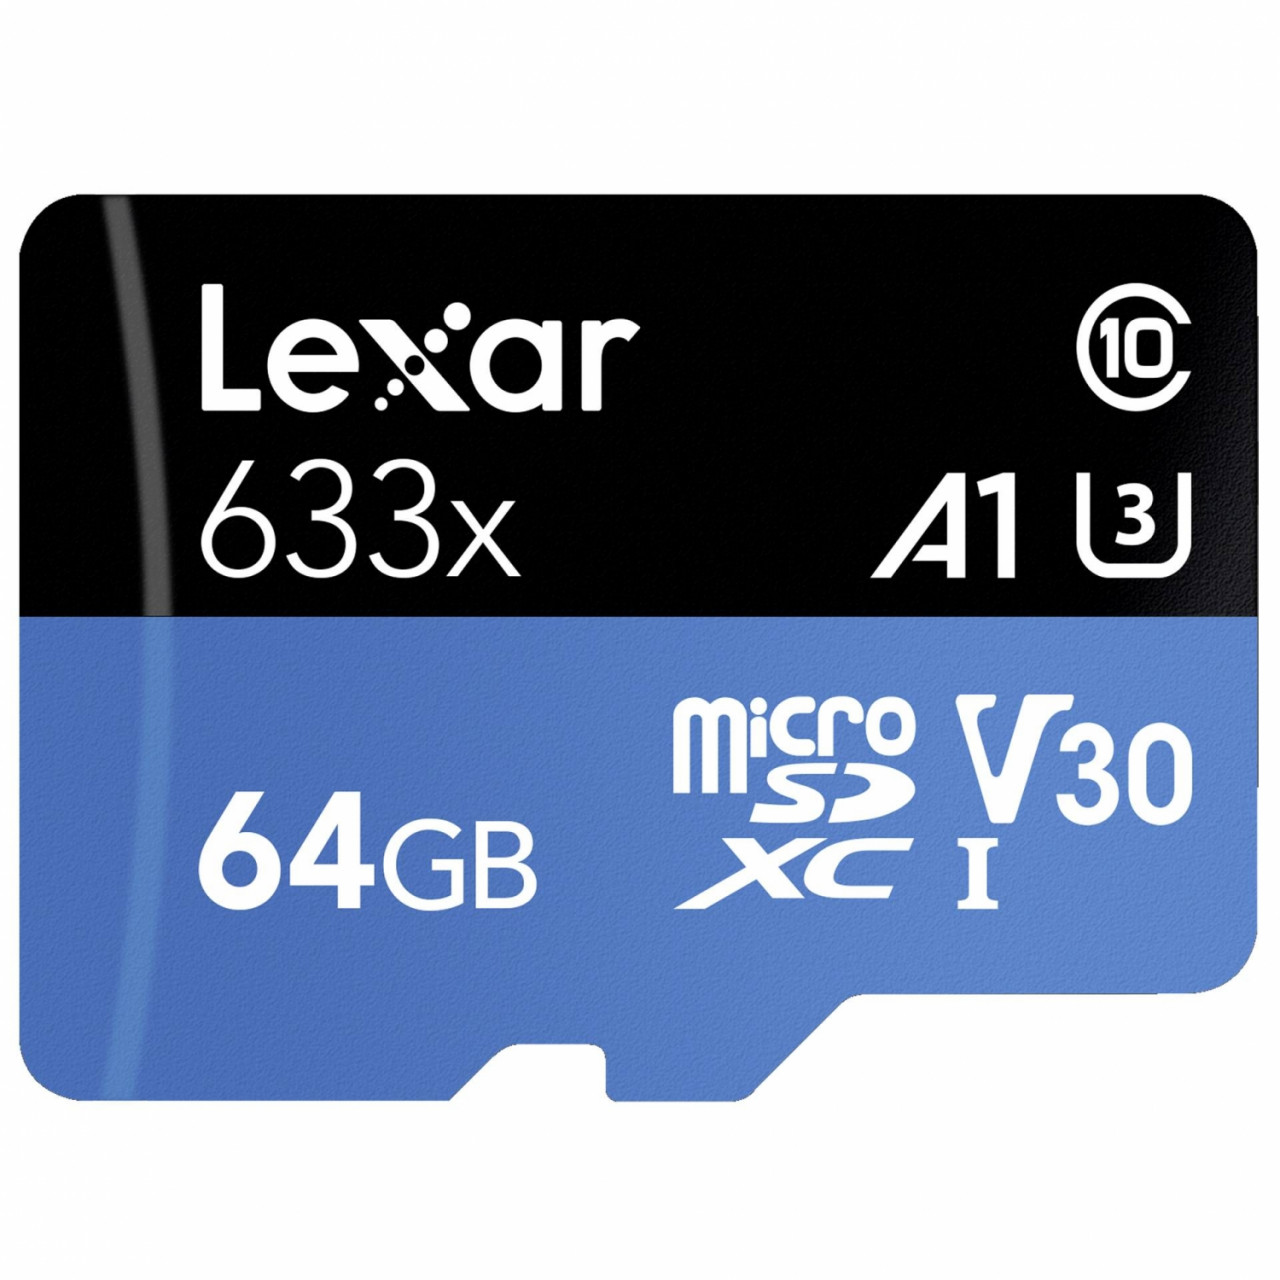 Lexar microSDXC Card 64GB UHS-I High-Performance 633x U3 100MB/s